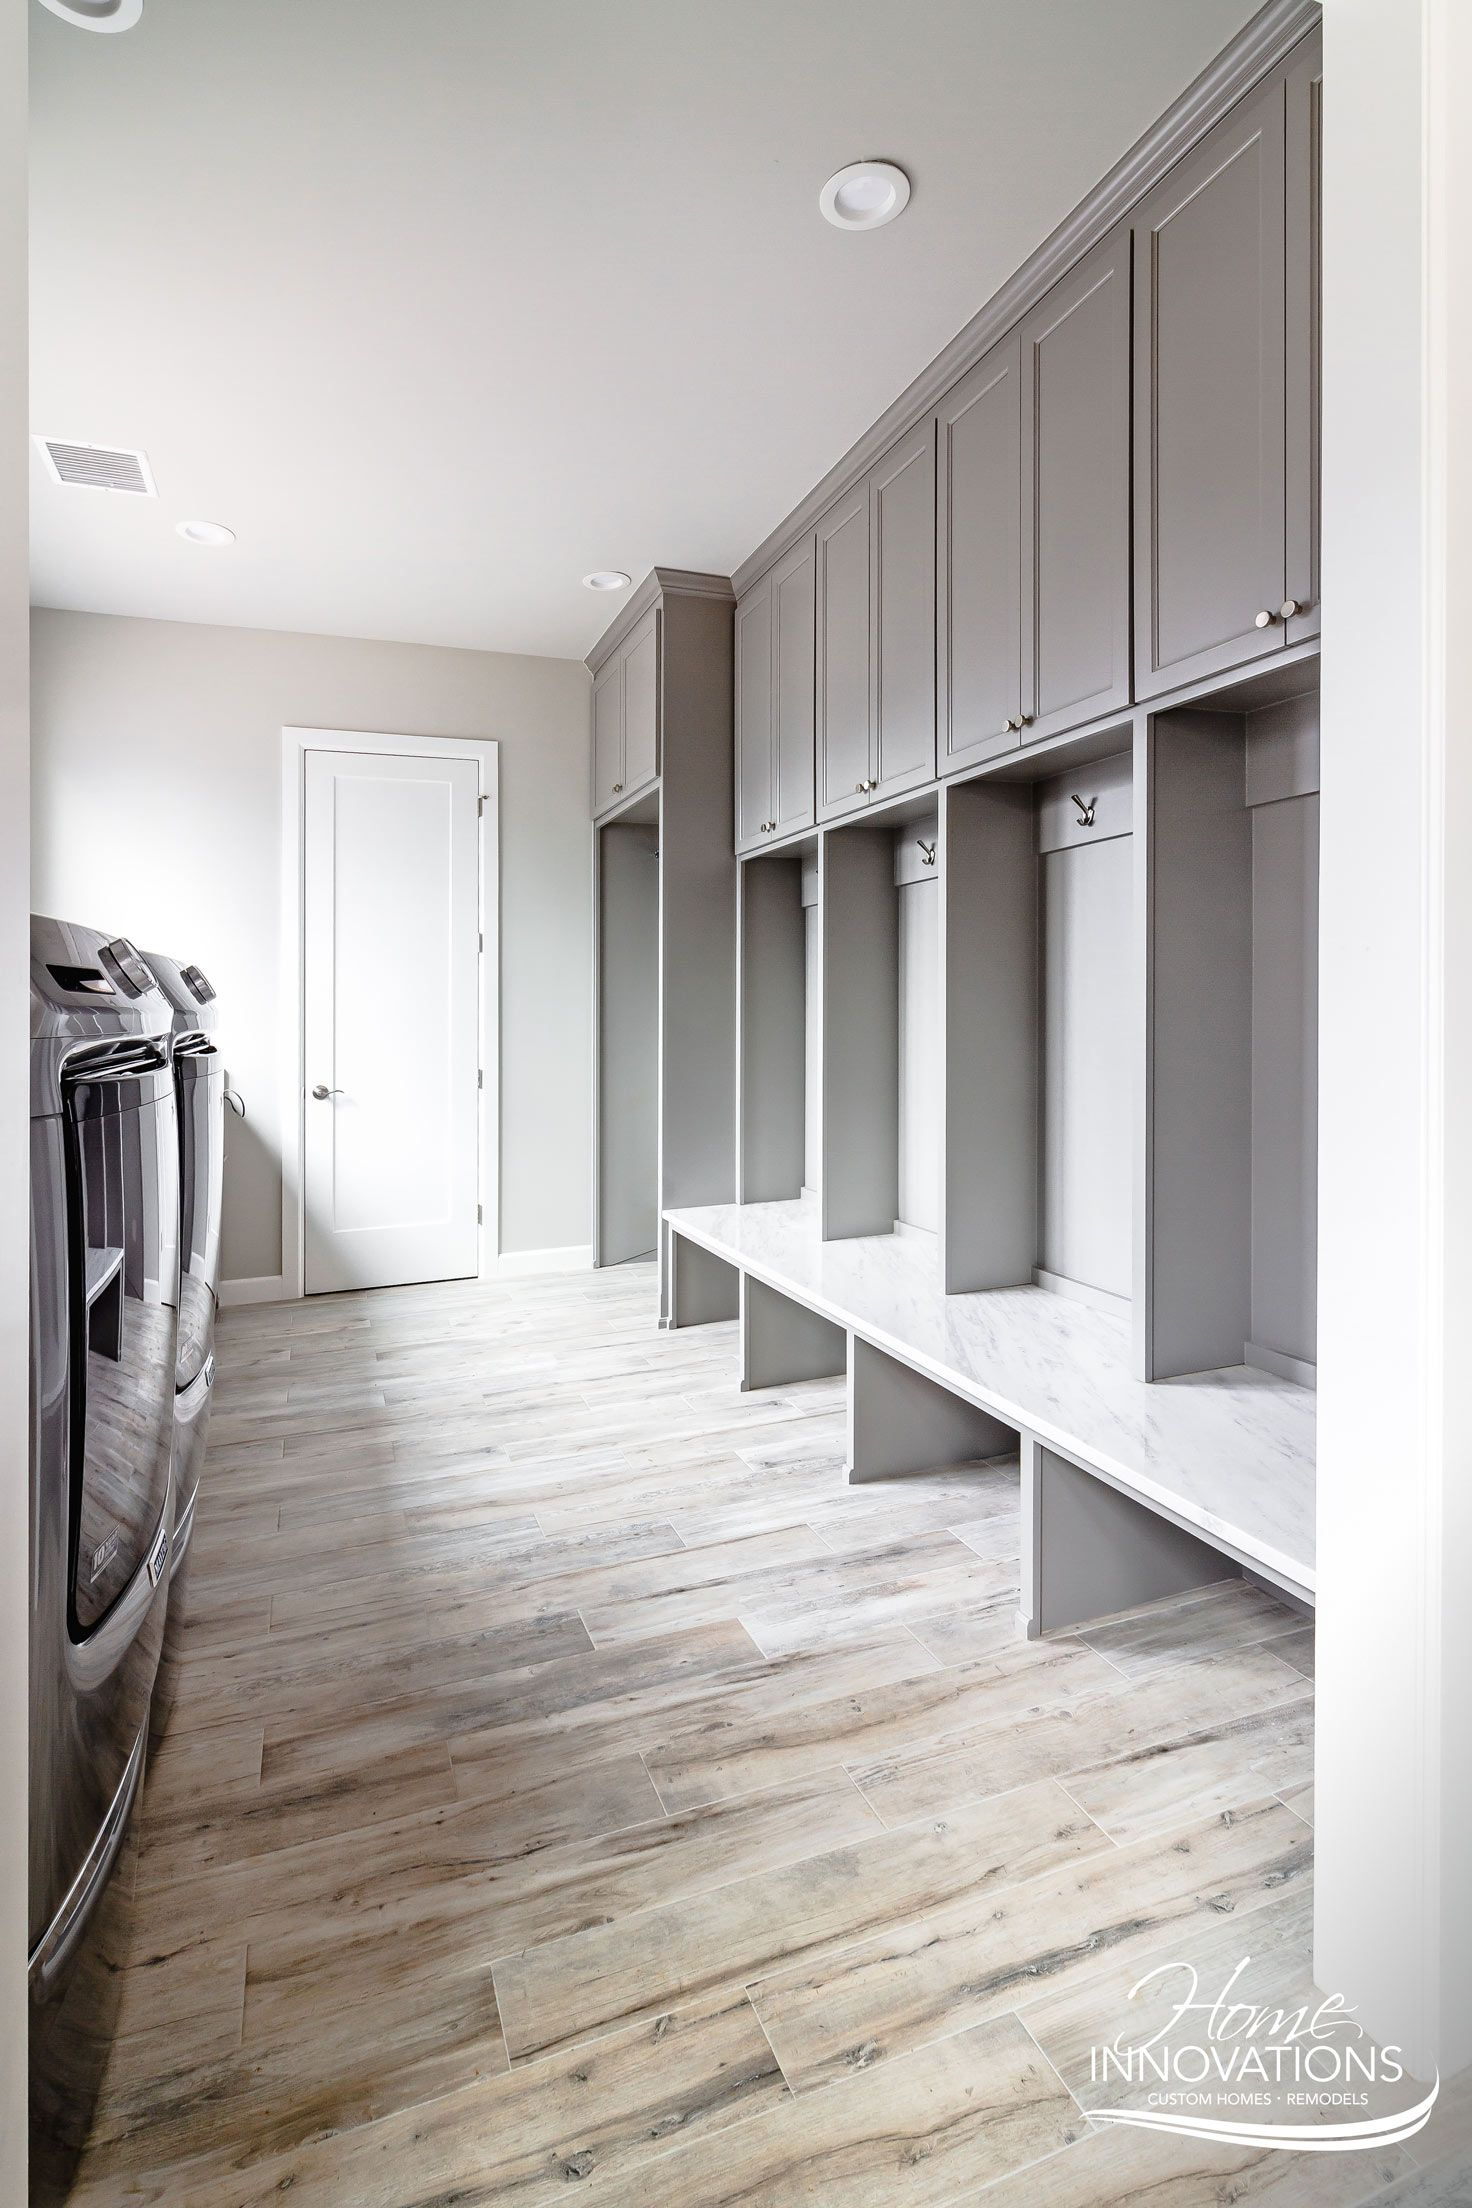 Best Home Remodel By Home Innovations Midtown Tulsa Laundry 640 x 480